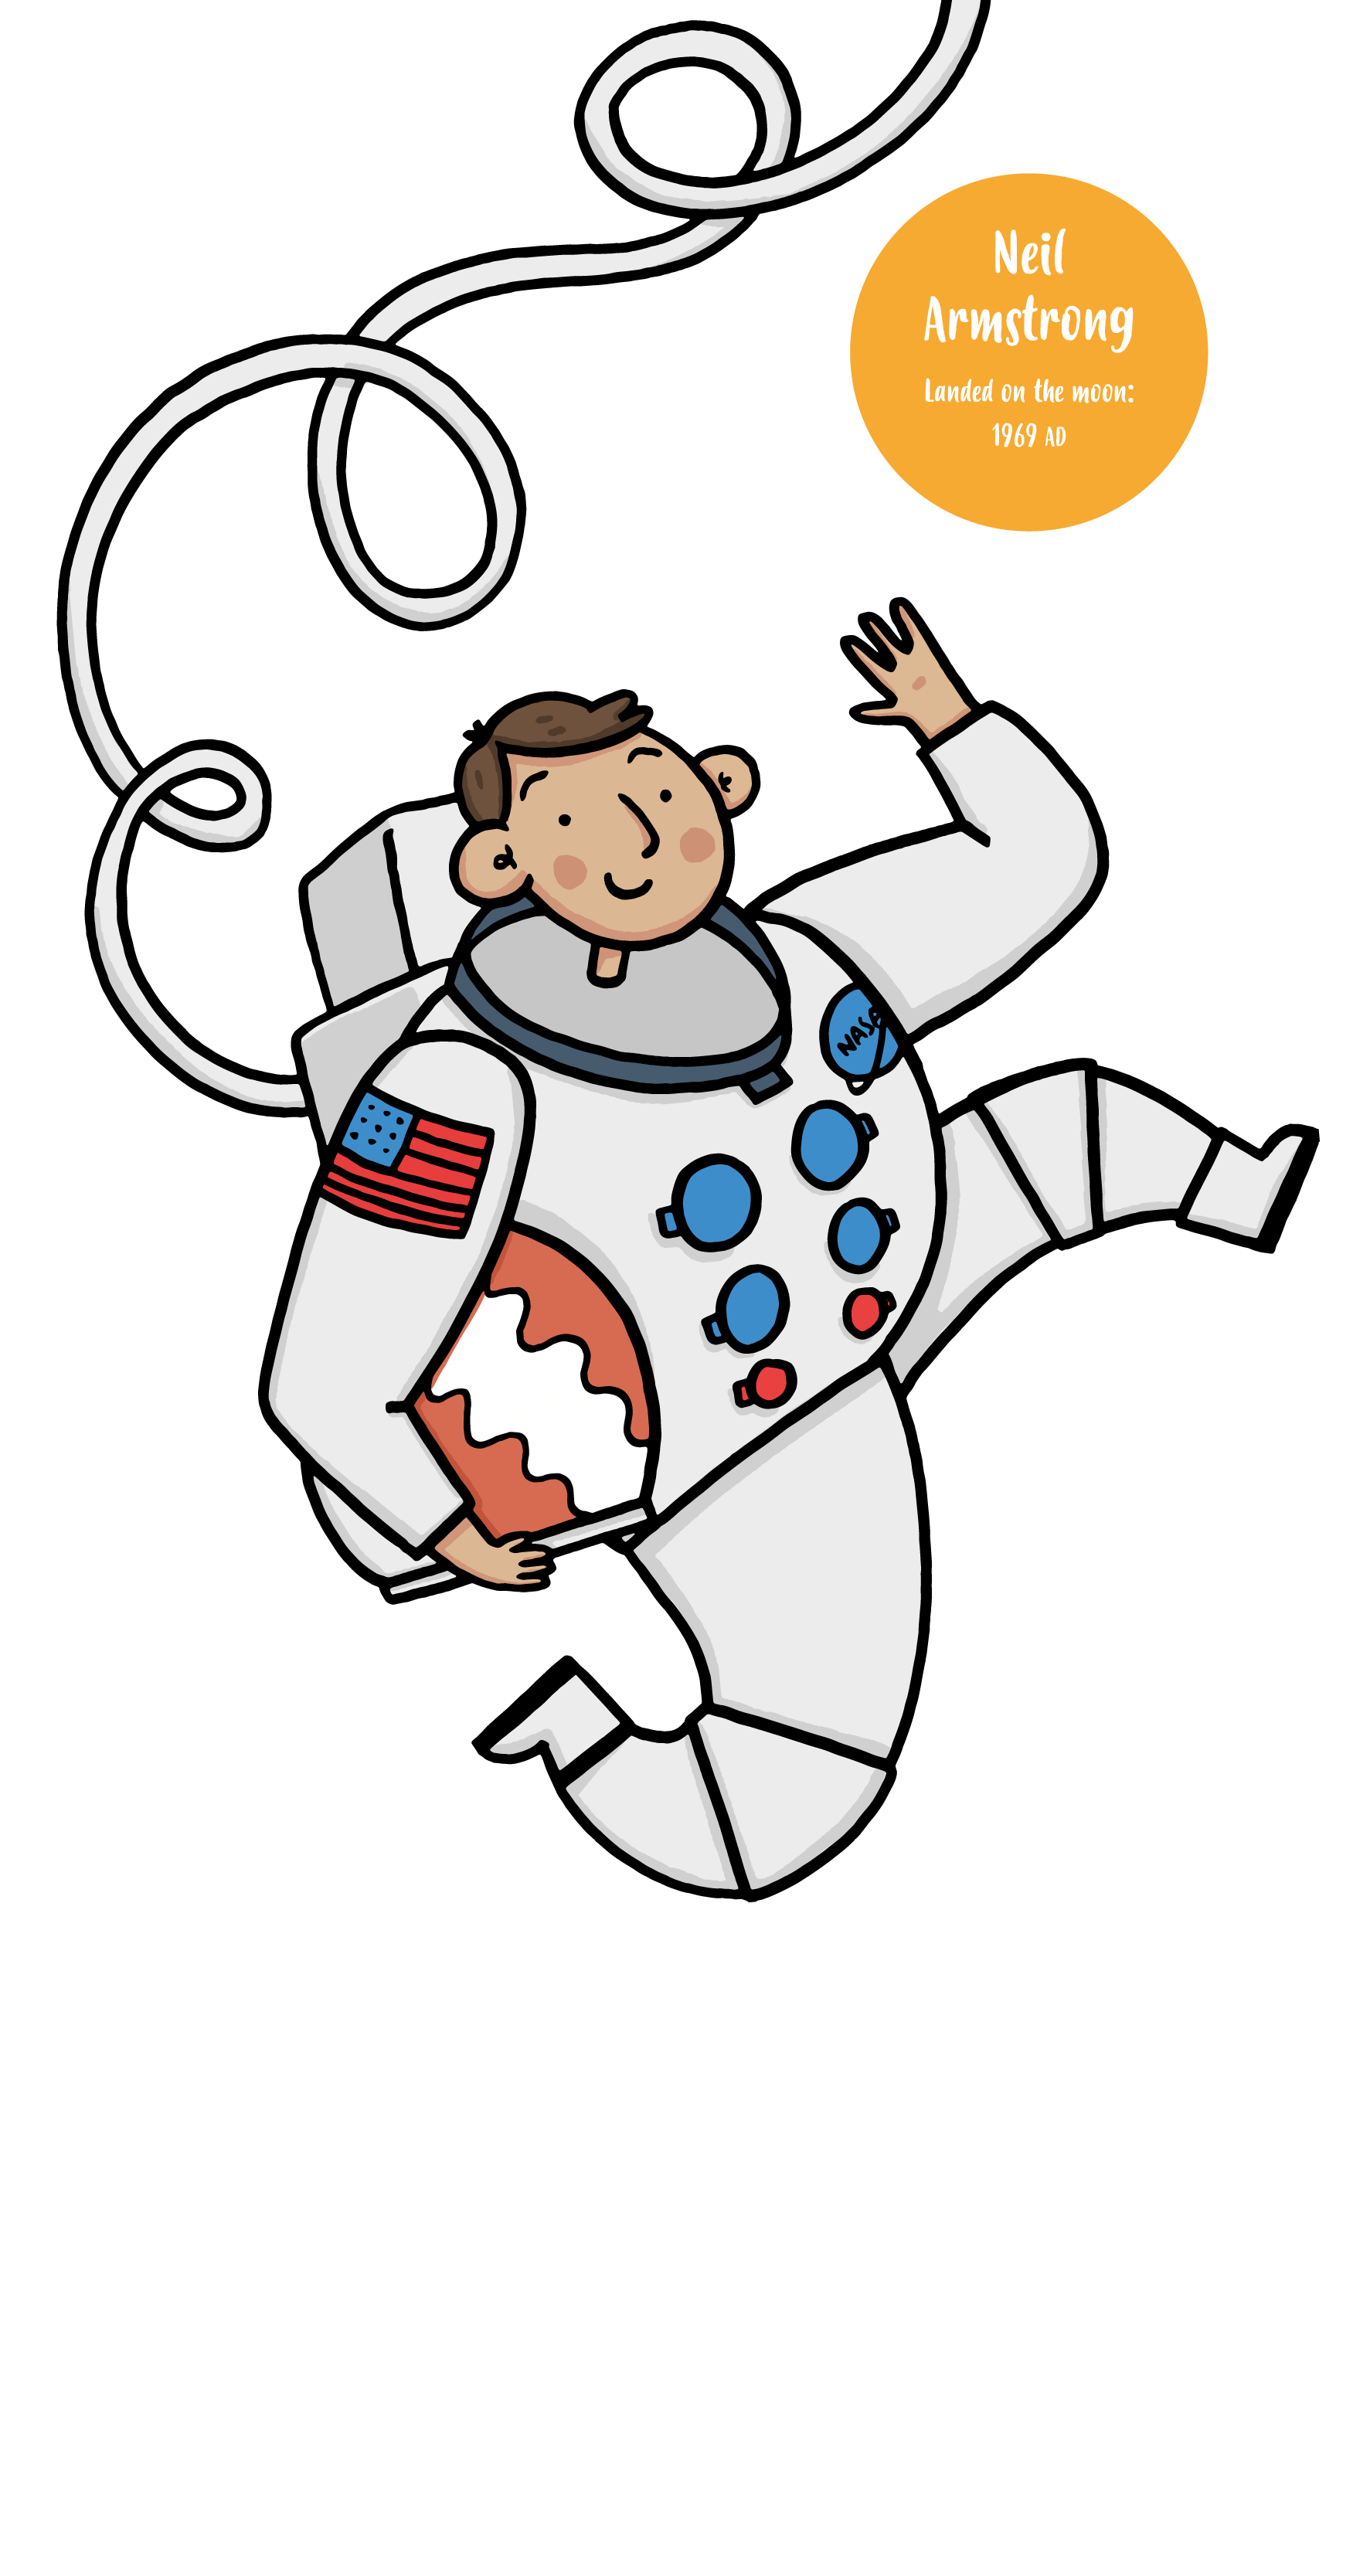 happy_history_character_neil_armstrong.png